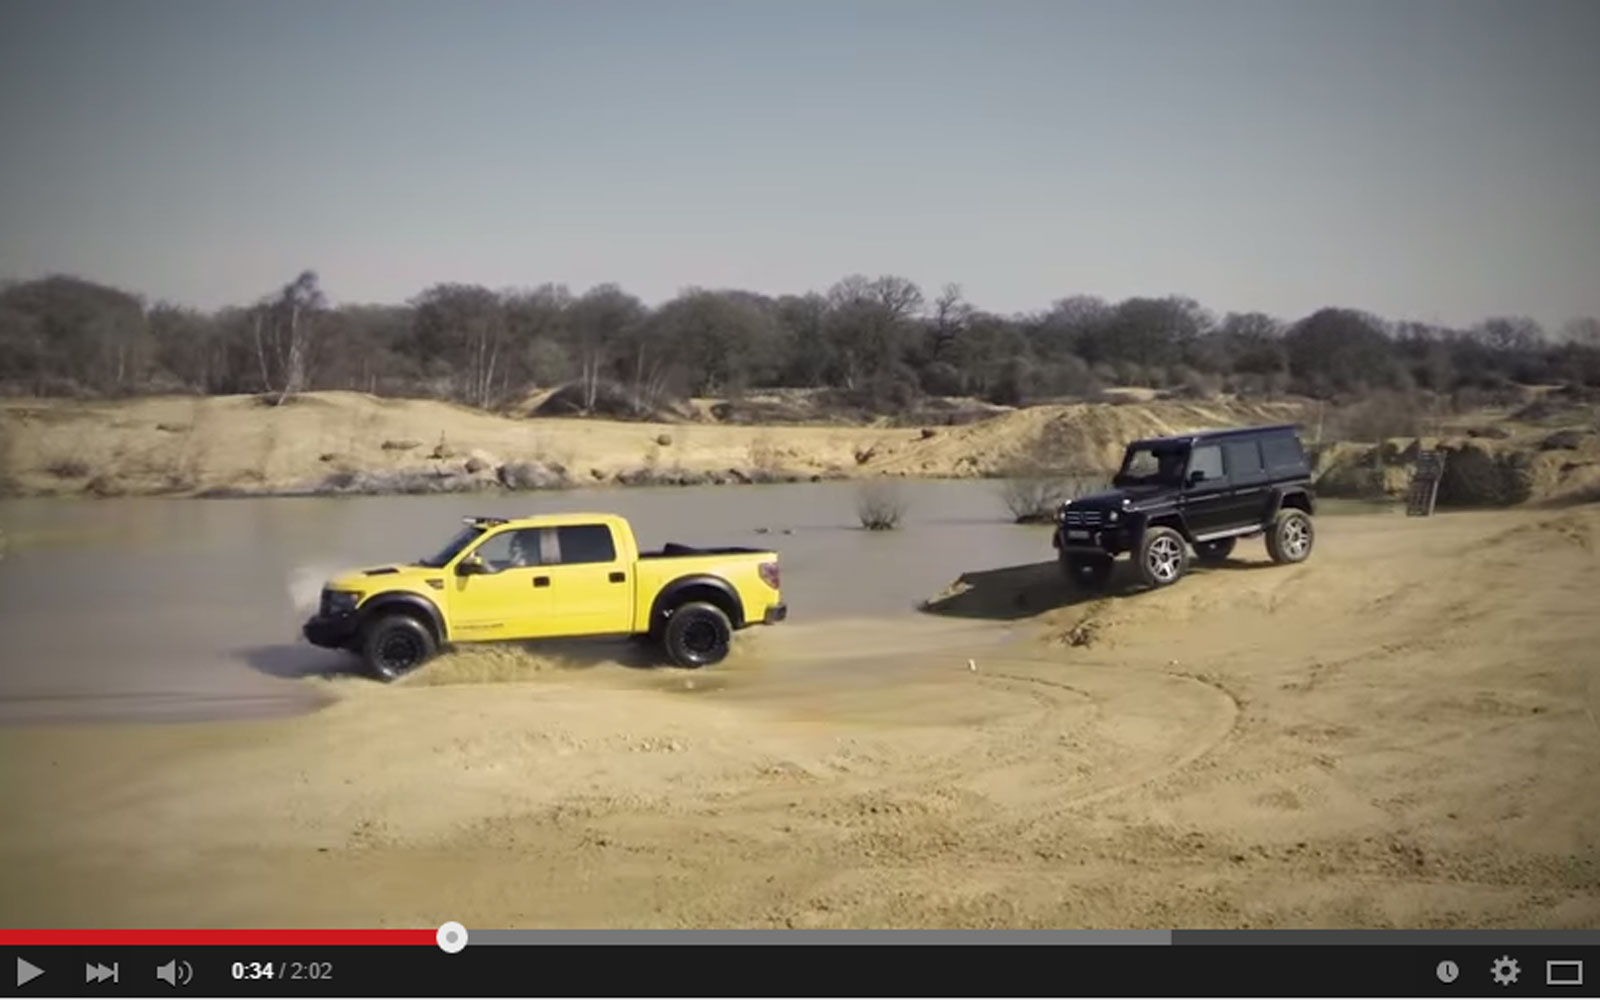 Top Gear Released A New Magnificient Video With The Raptor And The G500 On YouTube But…